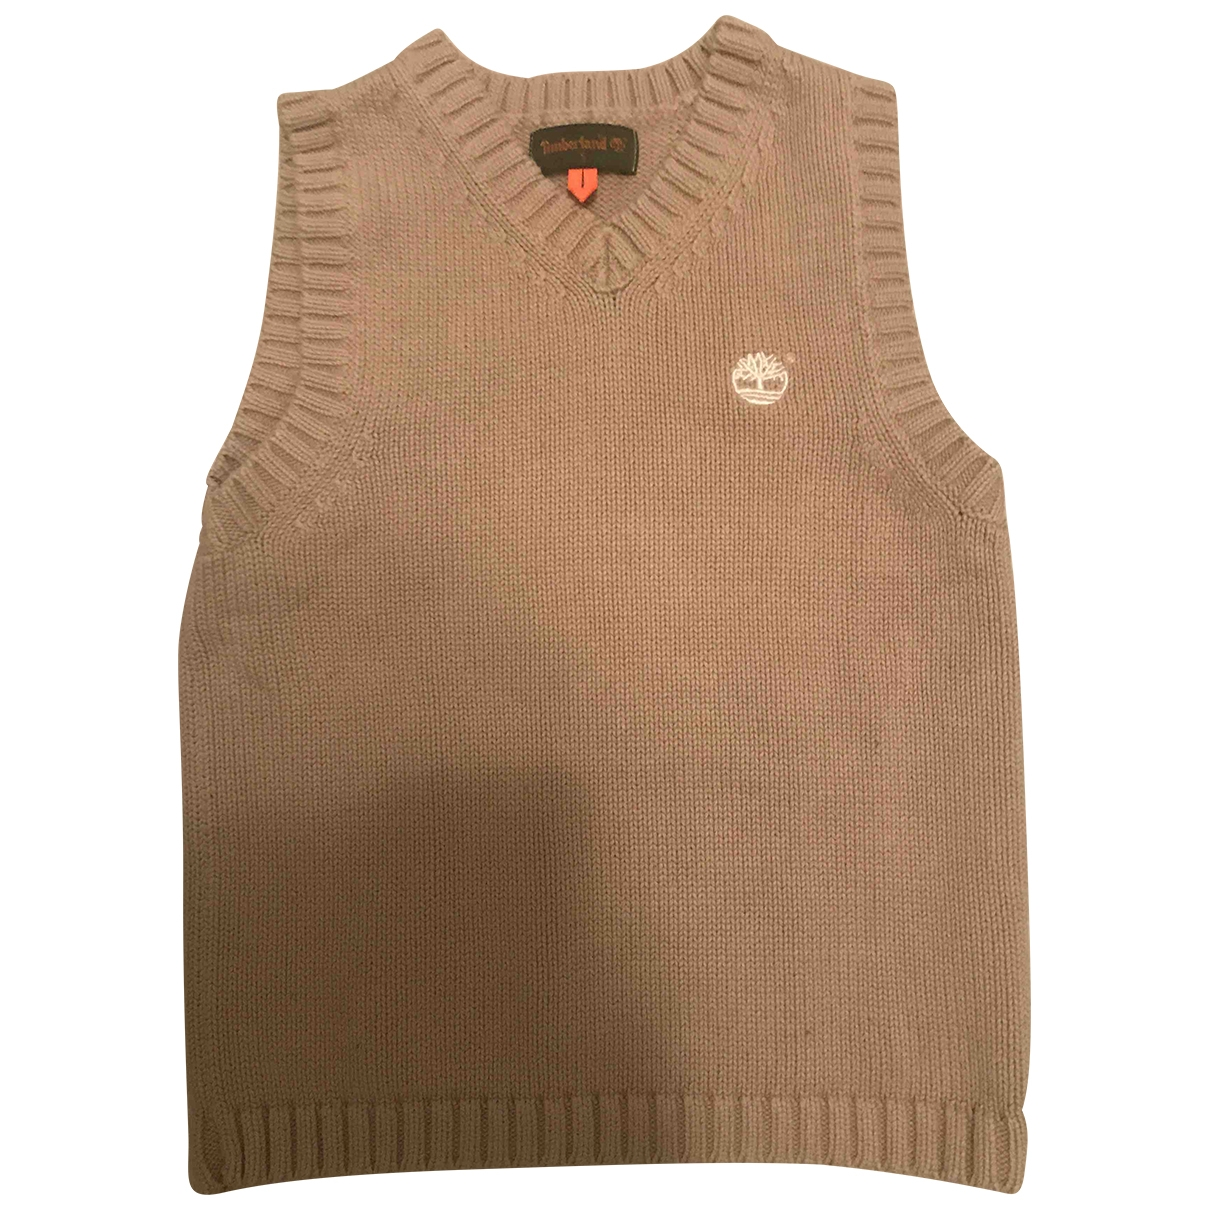 Timberland \N Beige Cotton Knitwear for Kids 5 years - up to 108cm FR